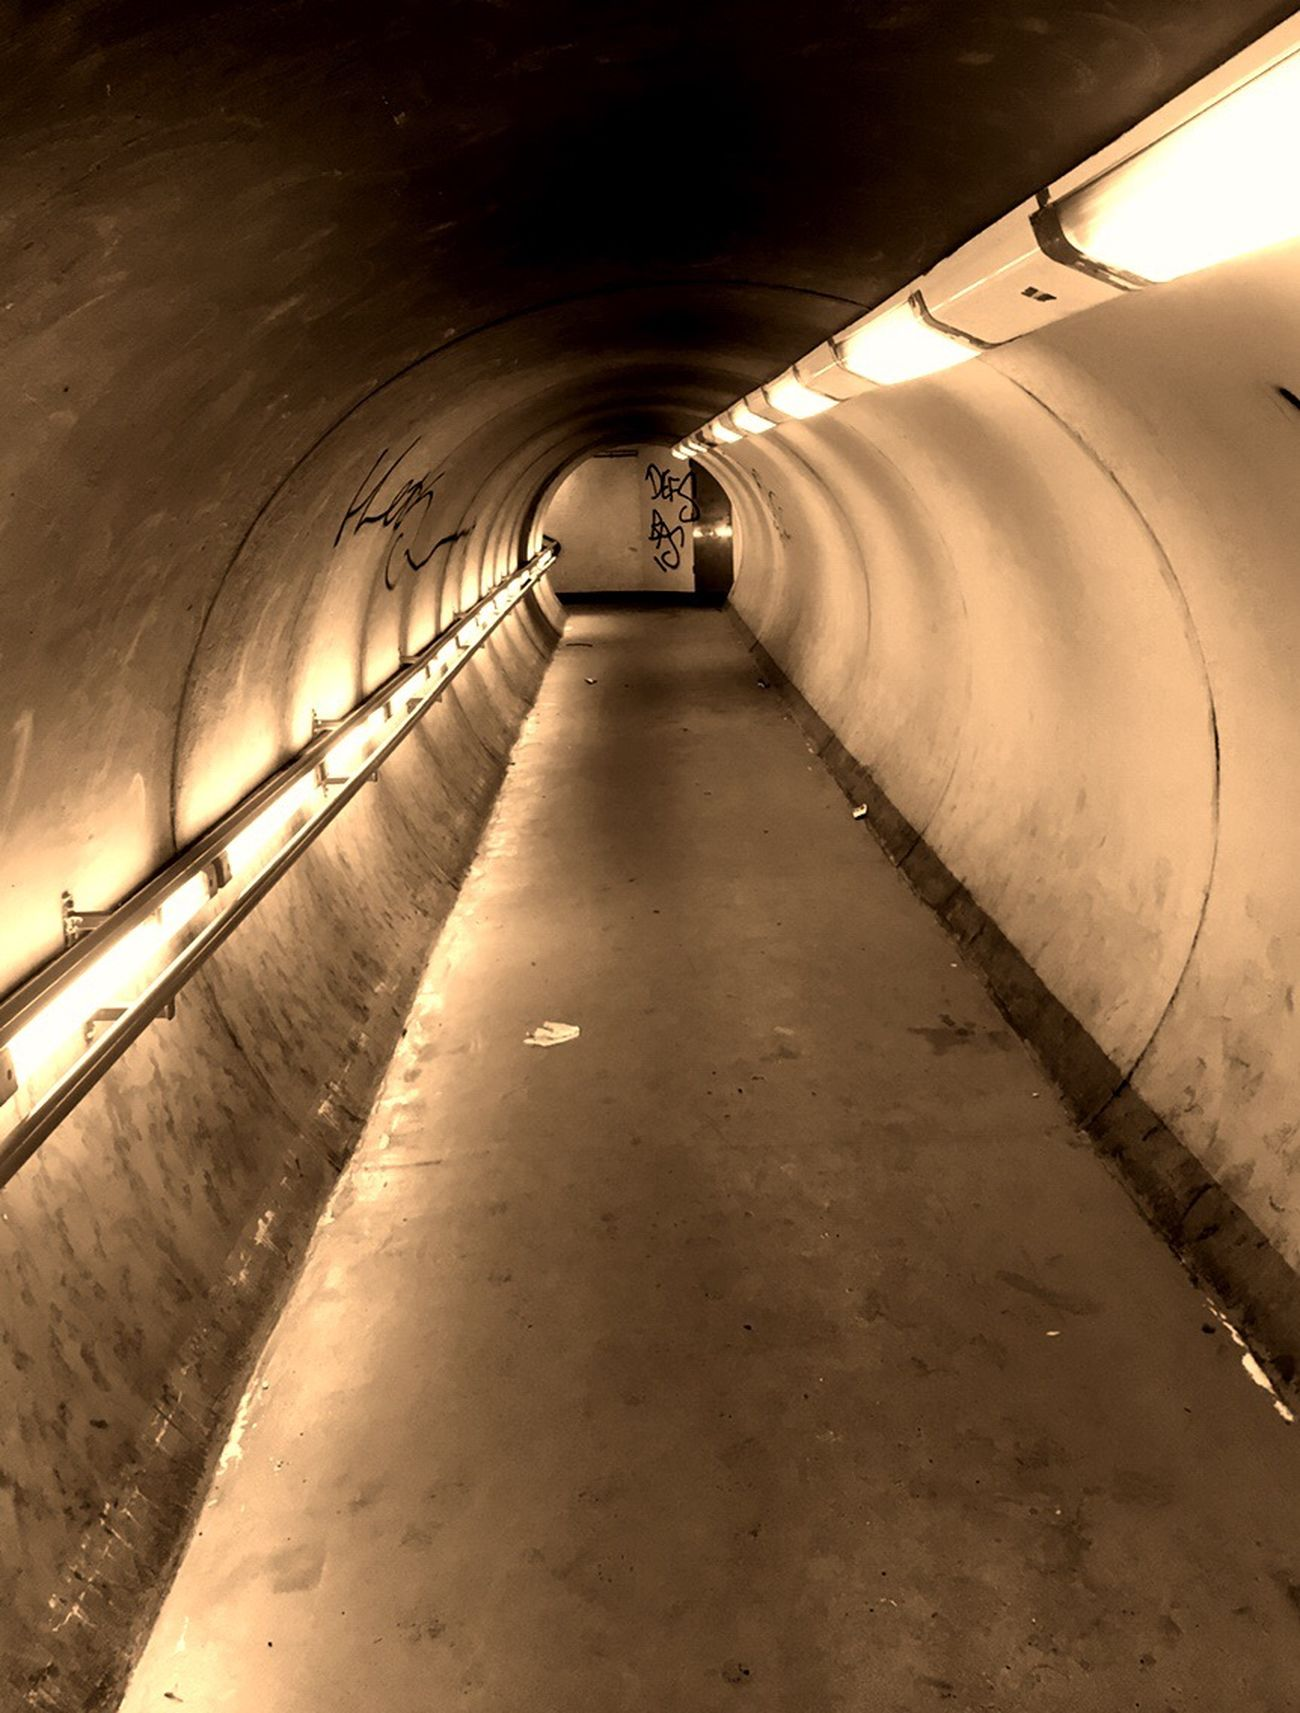 The Way Forward Tunnel Tunnel Vision Vanishing Point Myperspective Point Of View Lines And Shapes Mobilephotography